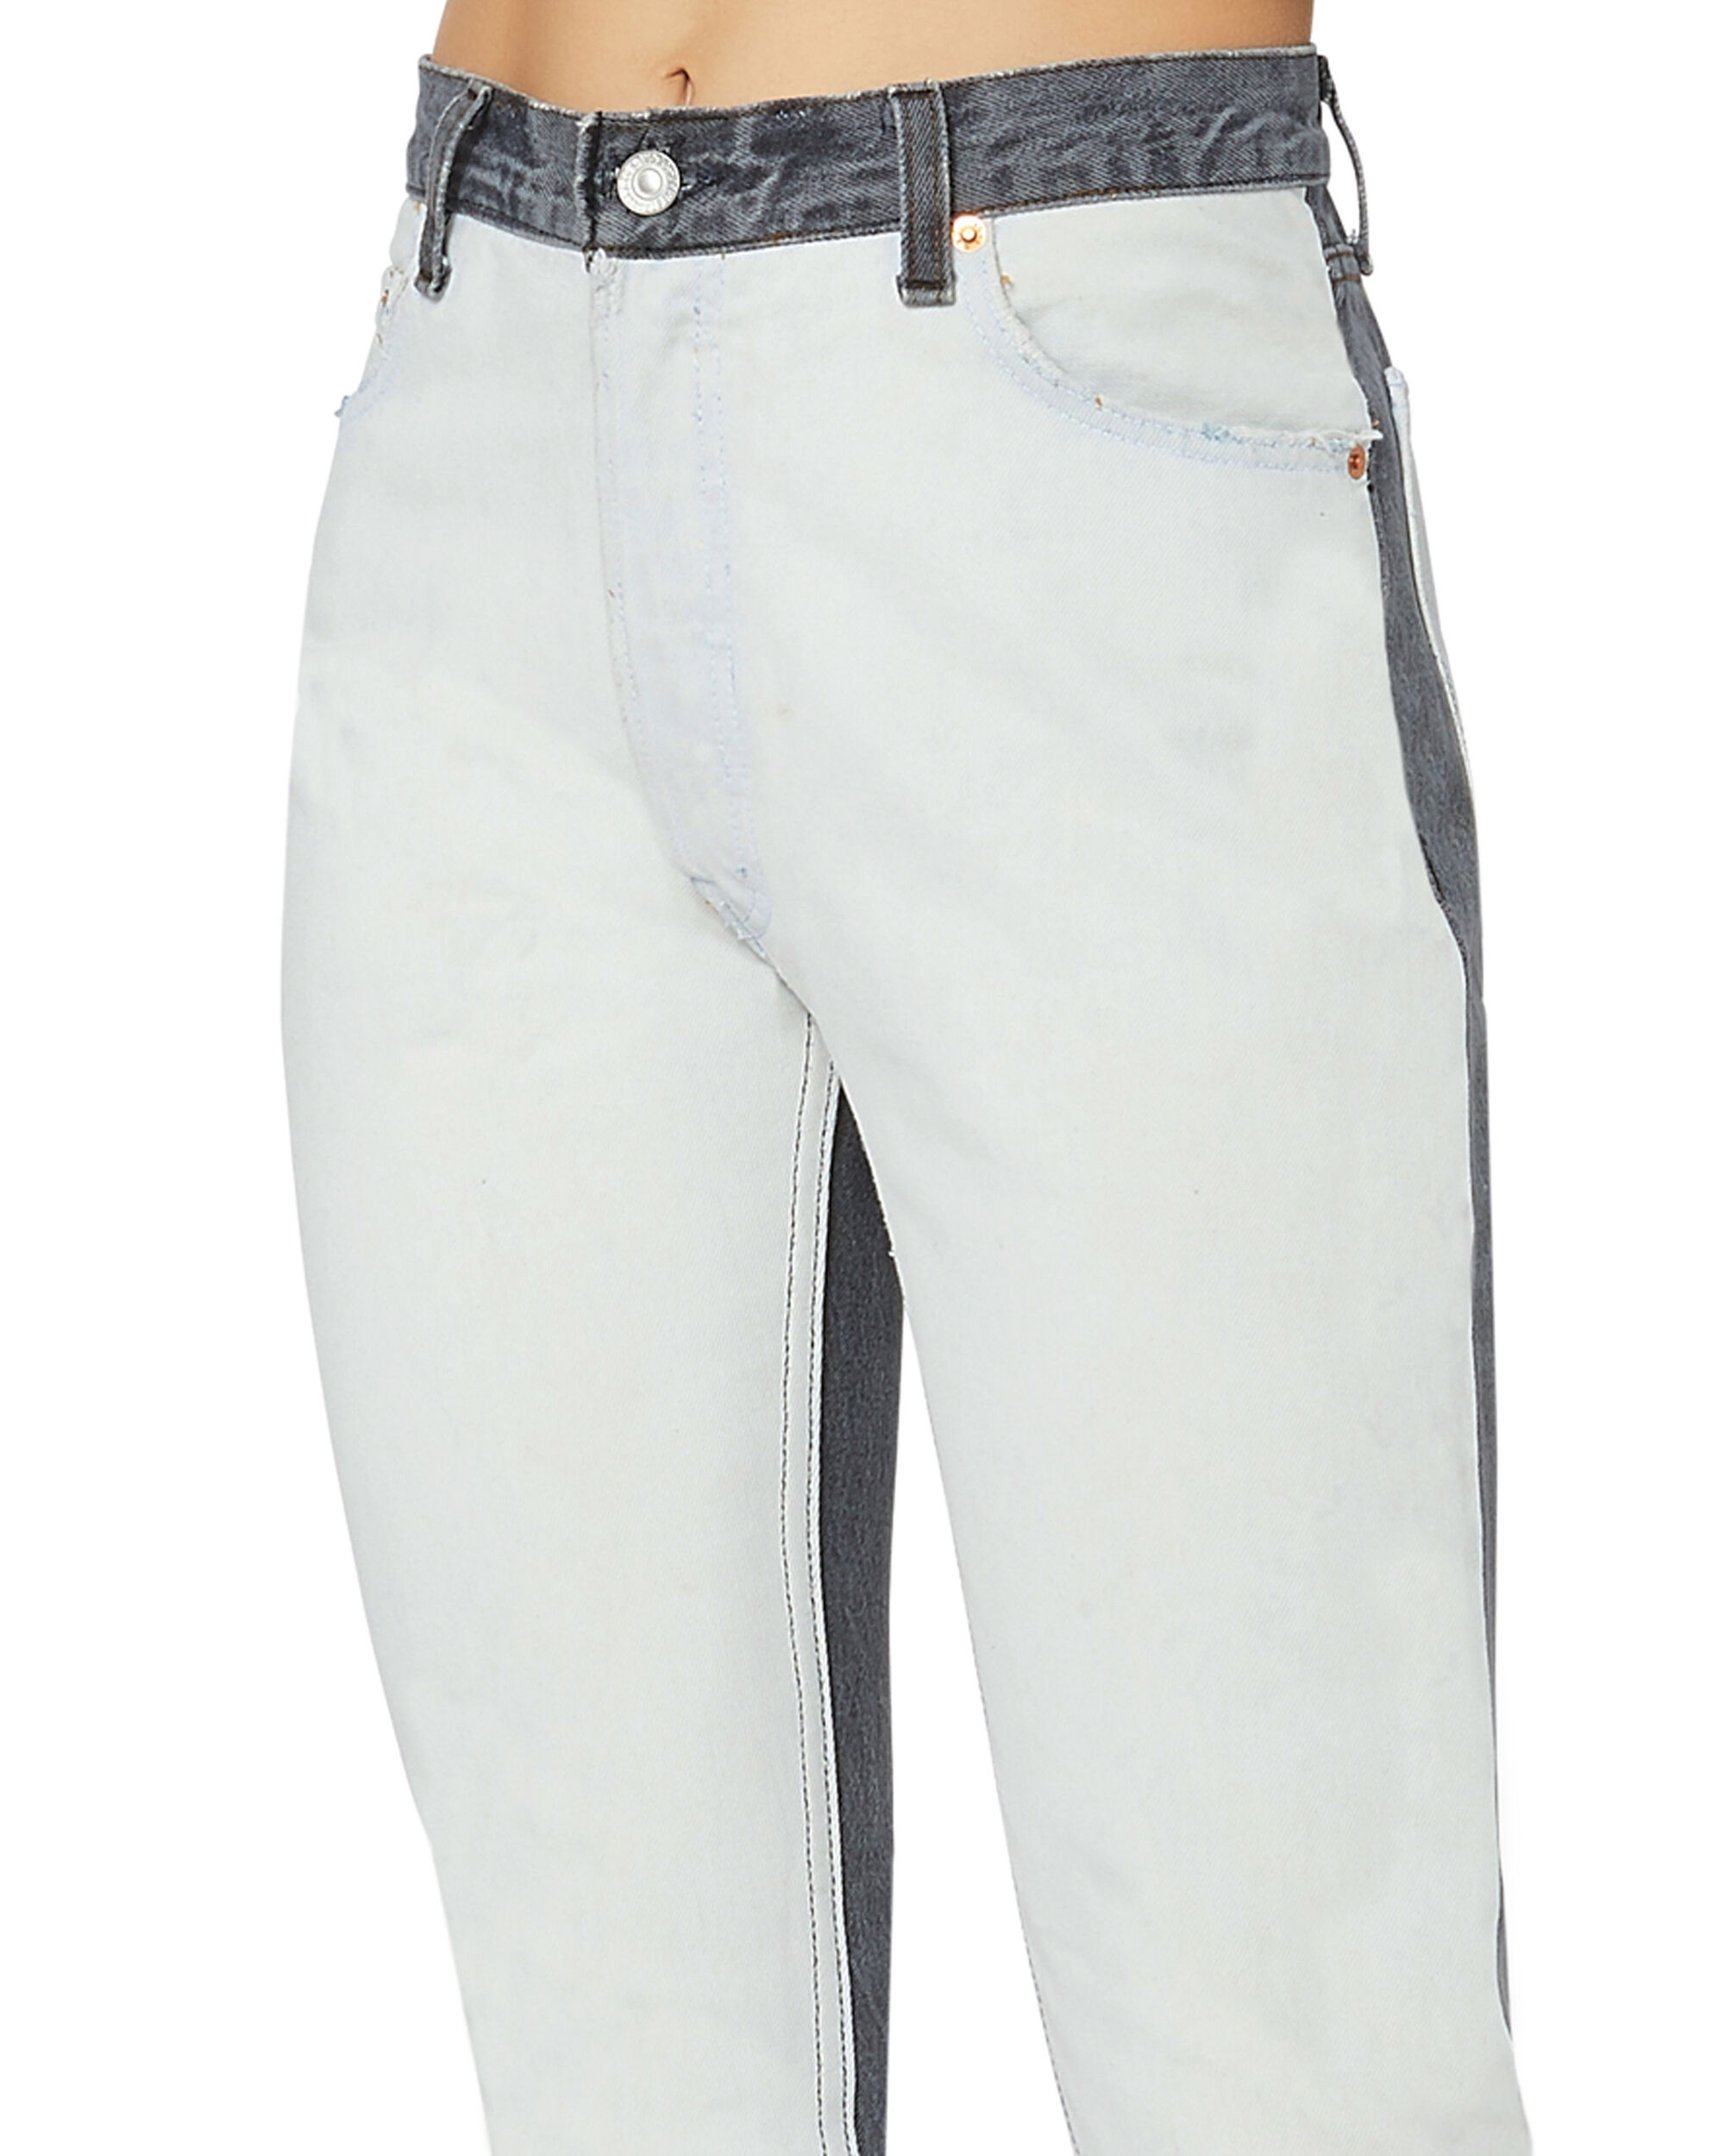 High-Rise Two-Tone Ankle Crop Jeans, BLACK/WHITE, hi-res